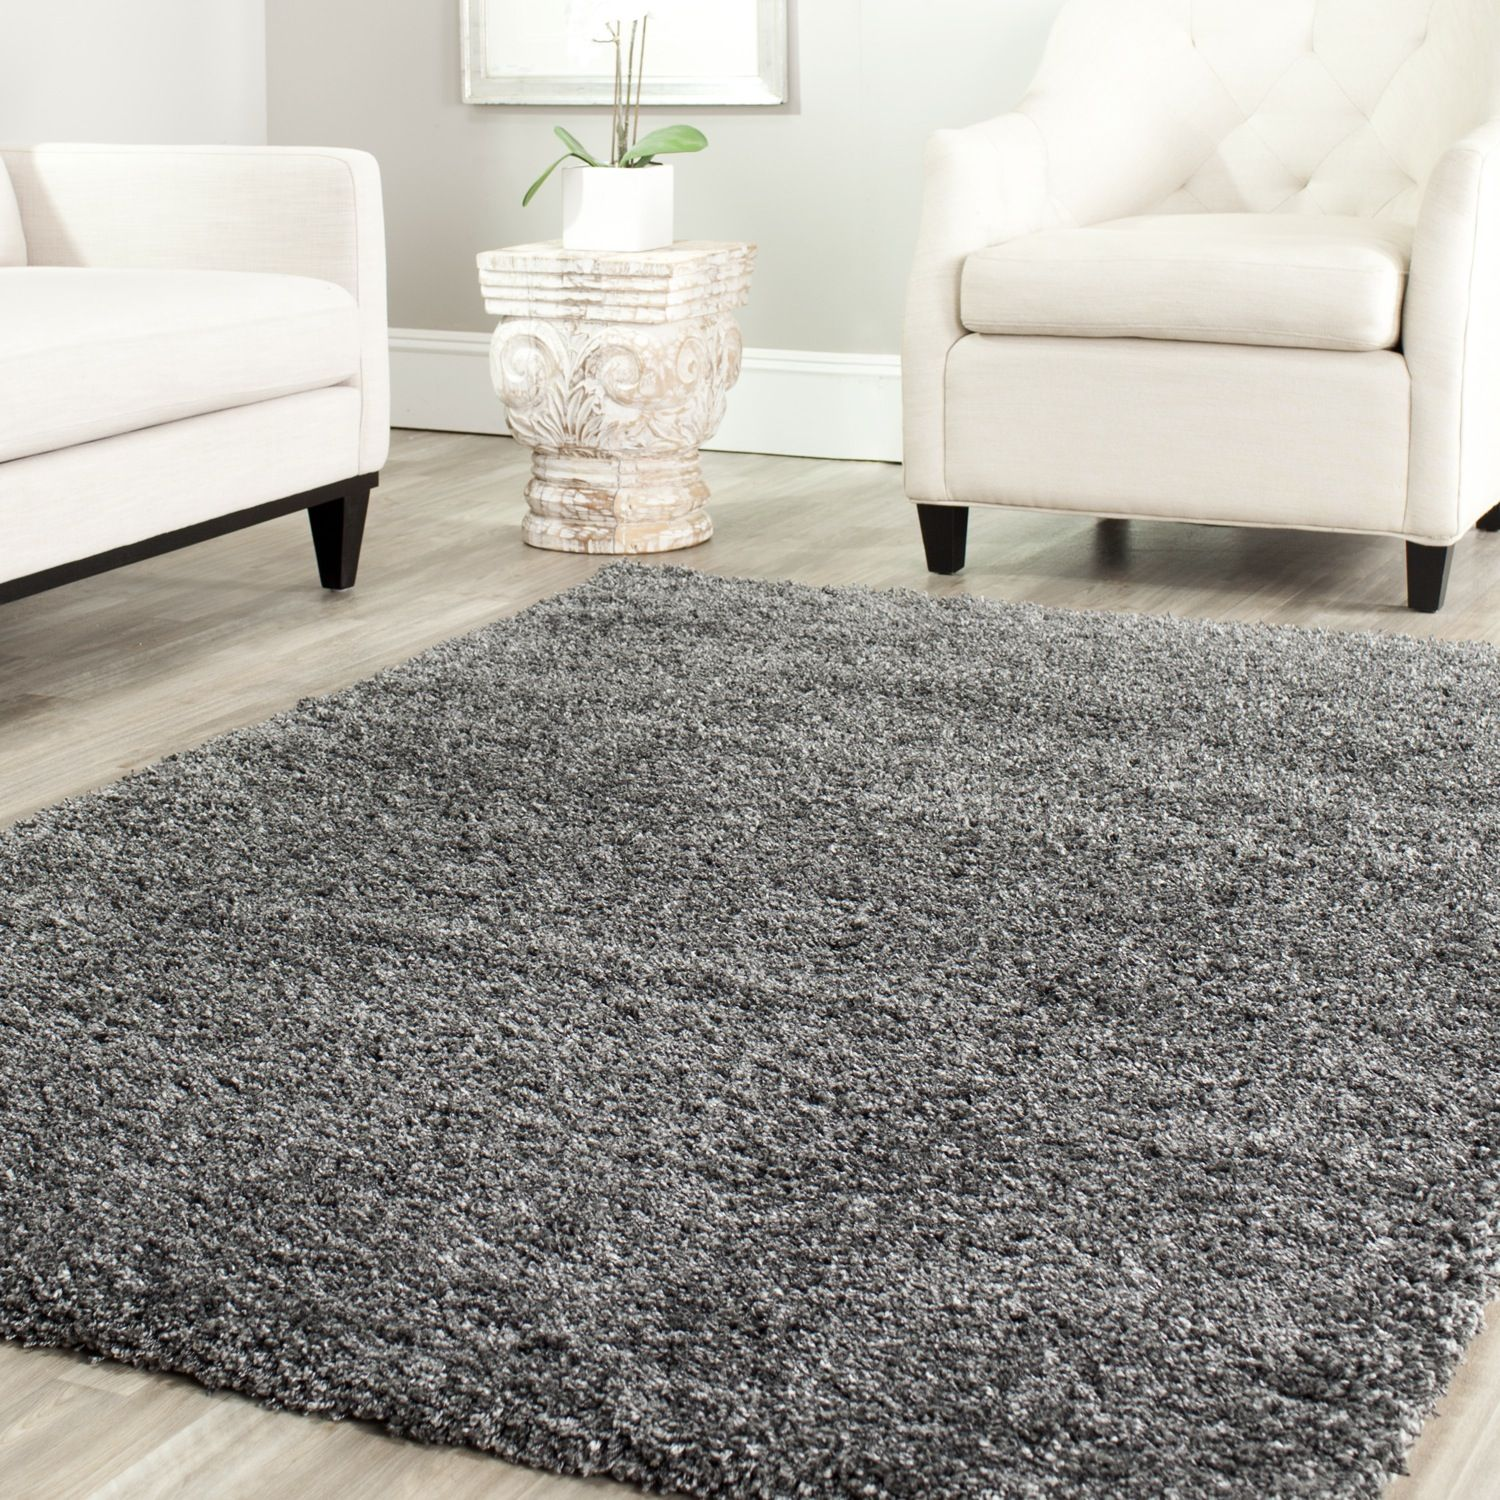 large living room rugs furniture. rich in tactile appeal this california cozy shag rug offers luxurious comfort and versatile furnishing large living room rugs furniture